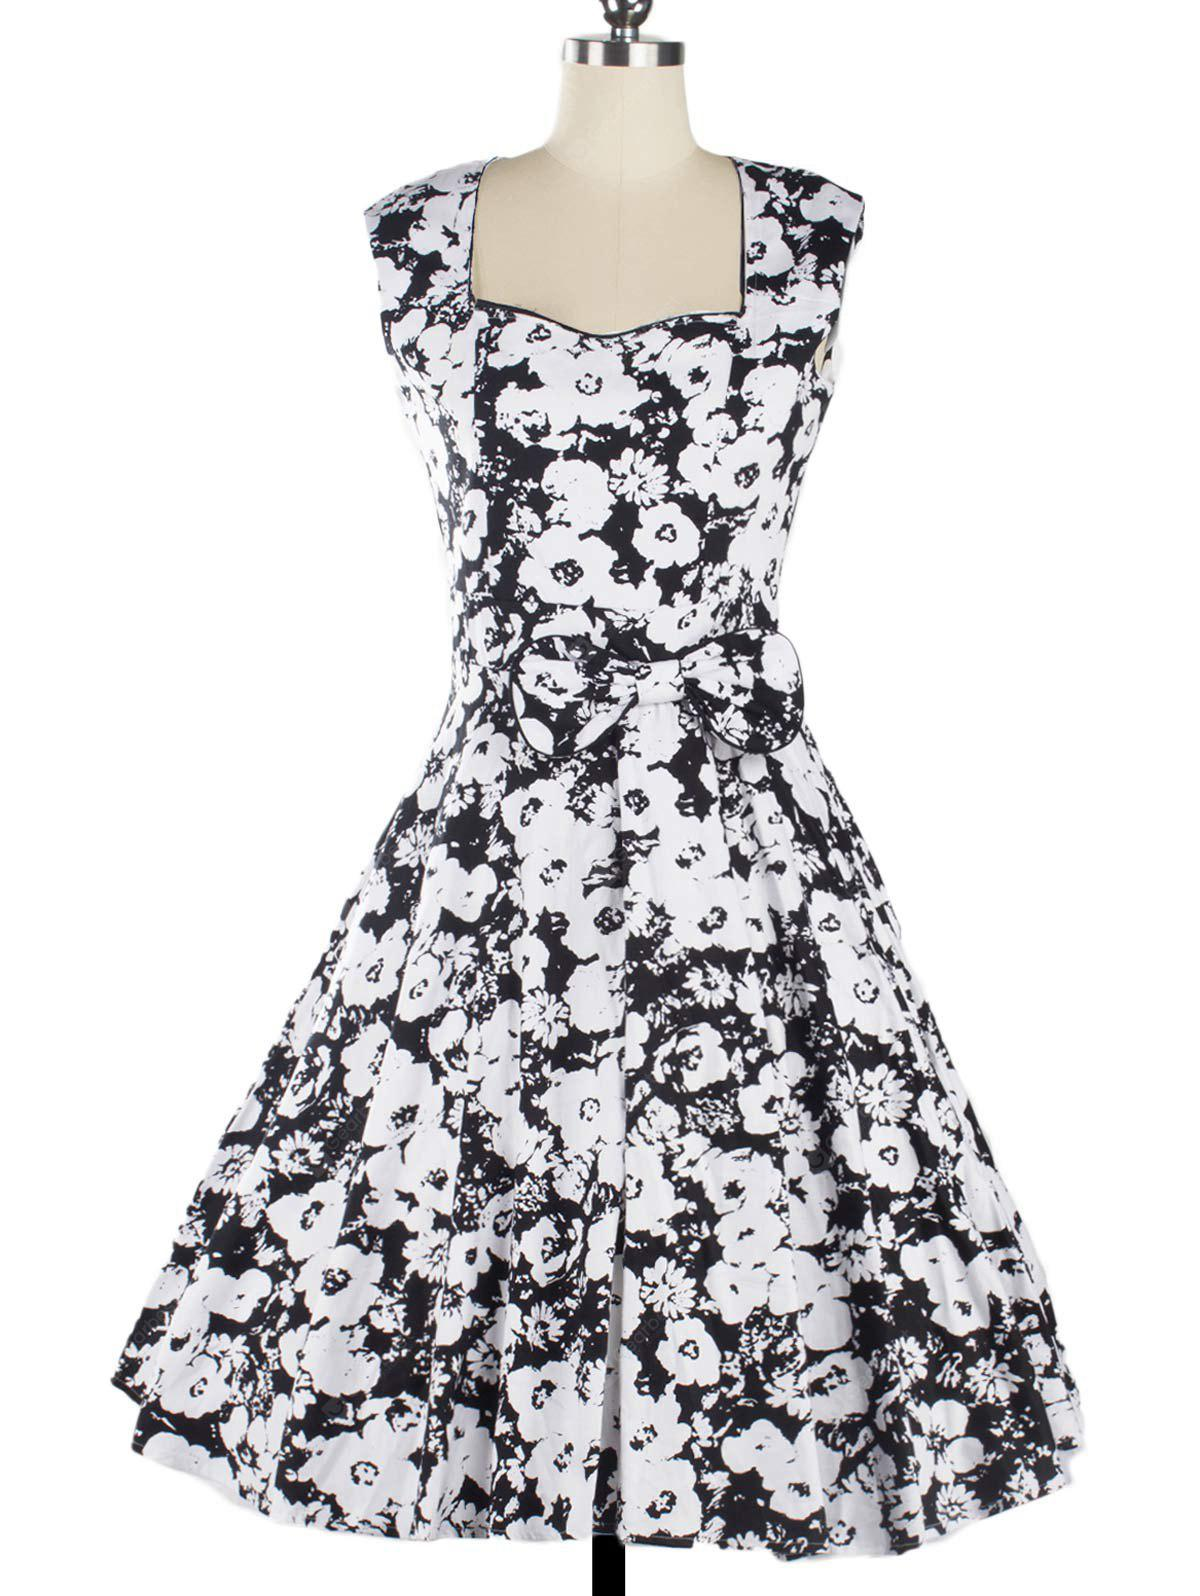 Vintage Swing Floral Knee Length Fit and Flare Dress